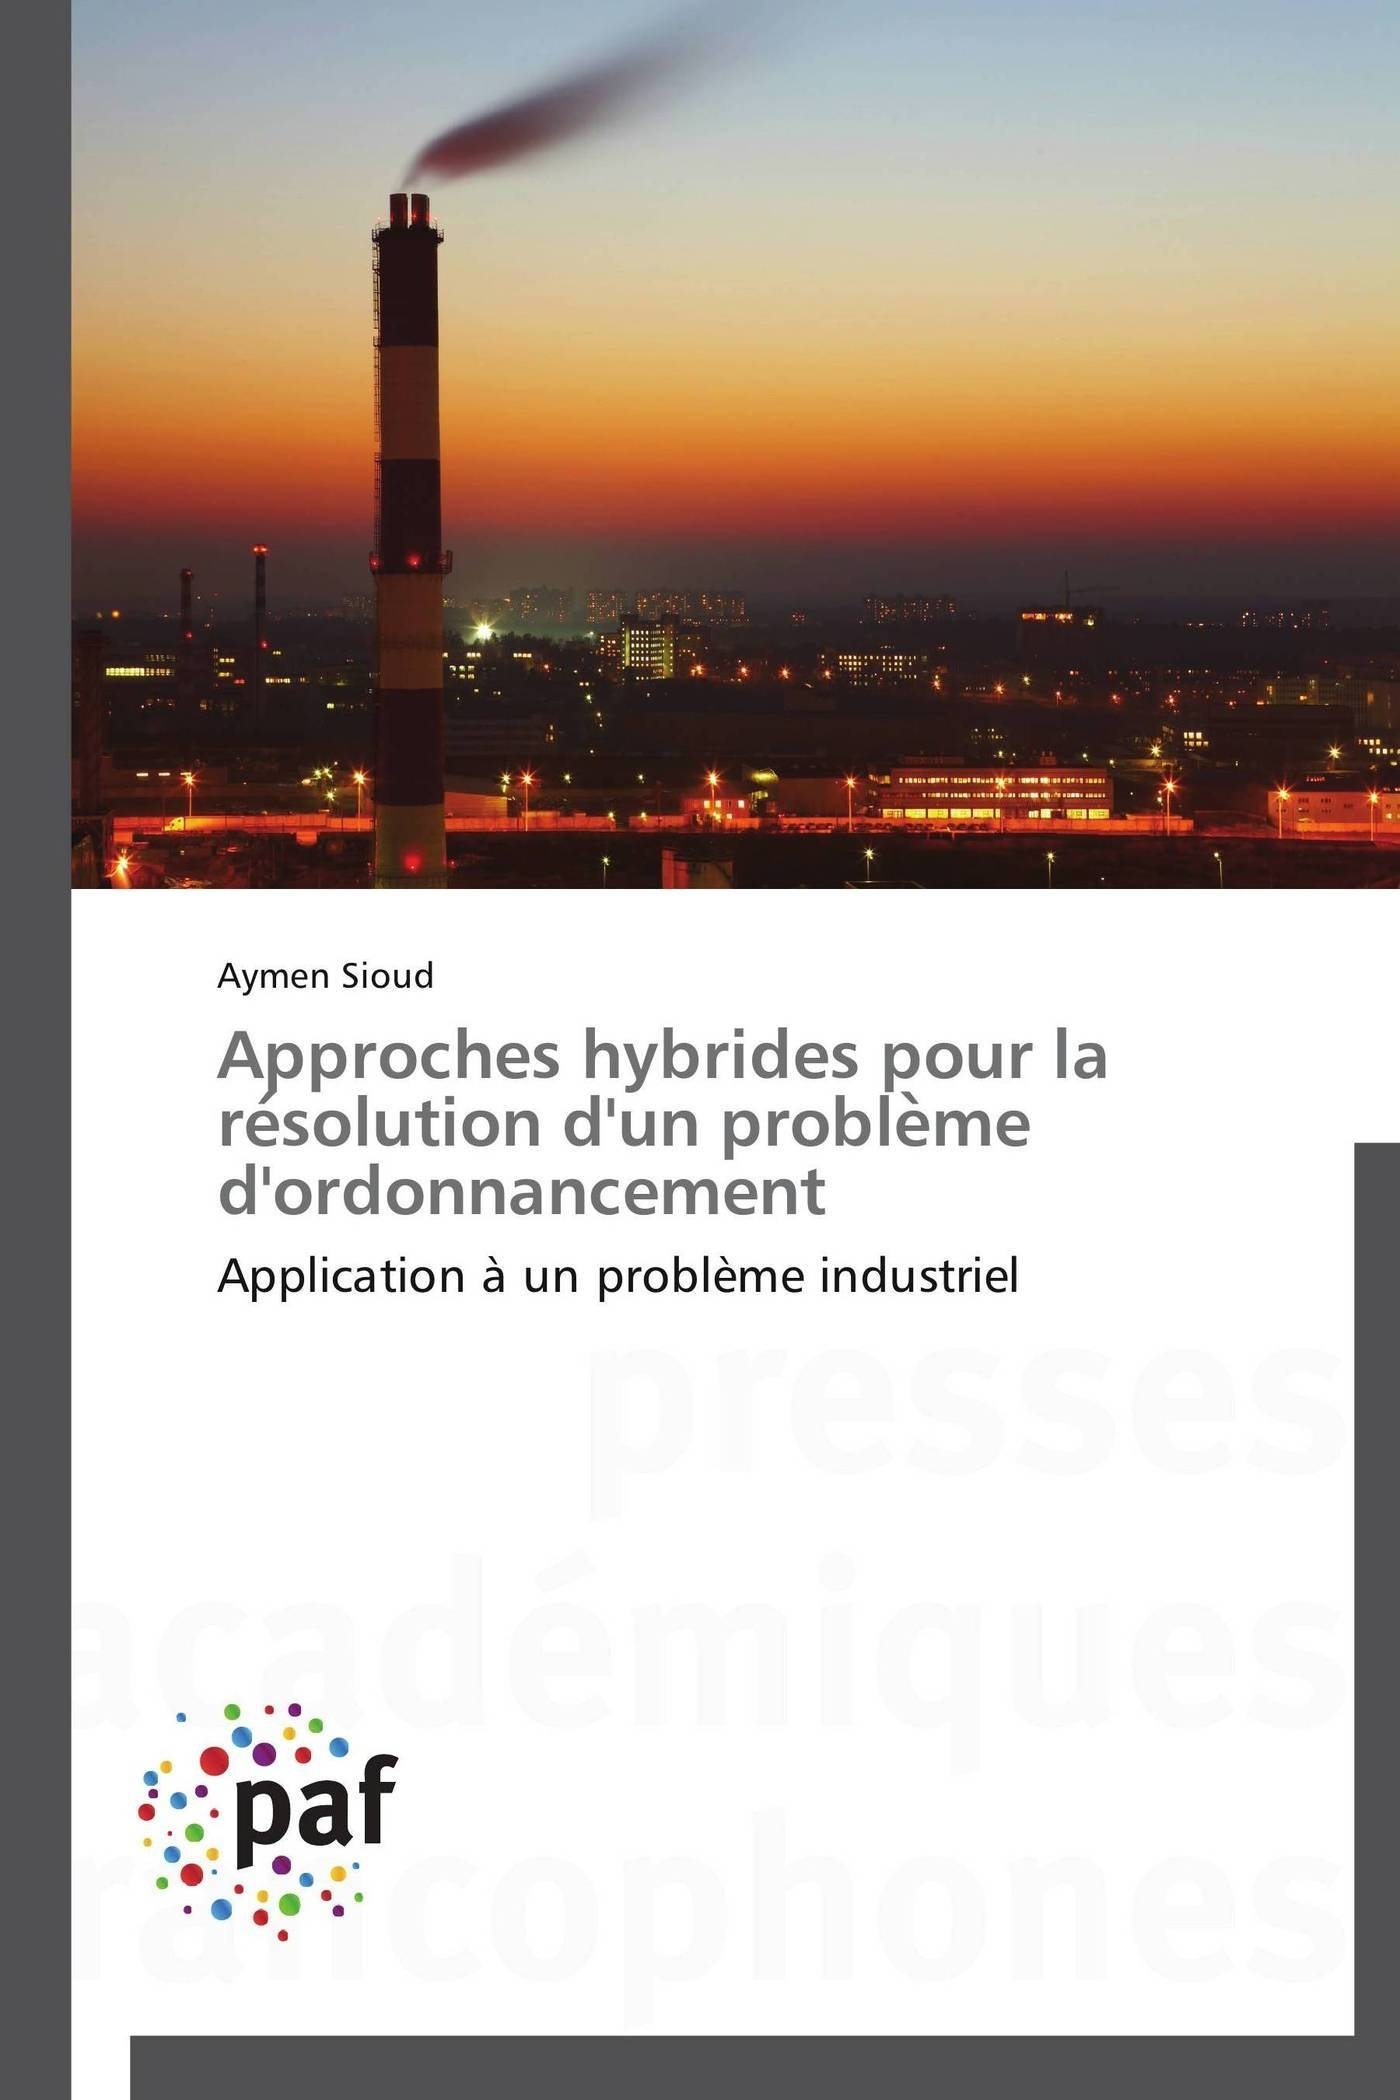 APPROCHES HYBRIDES POUR LA RE SOLUTION D'UN PROBLE ME D'ORDONNANCEMENT